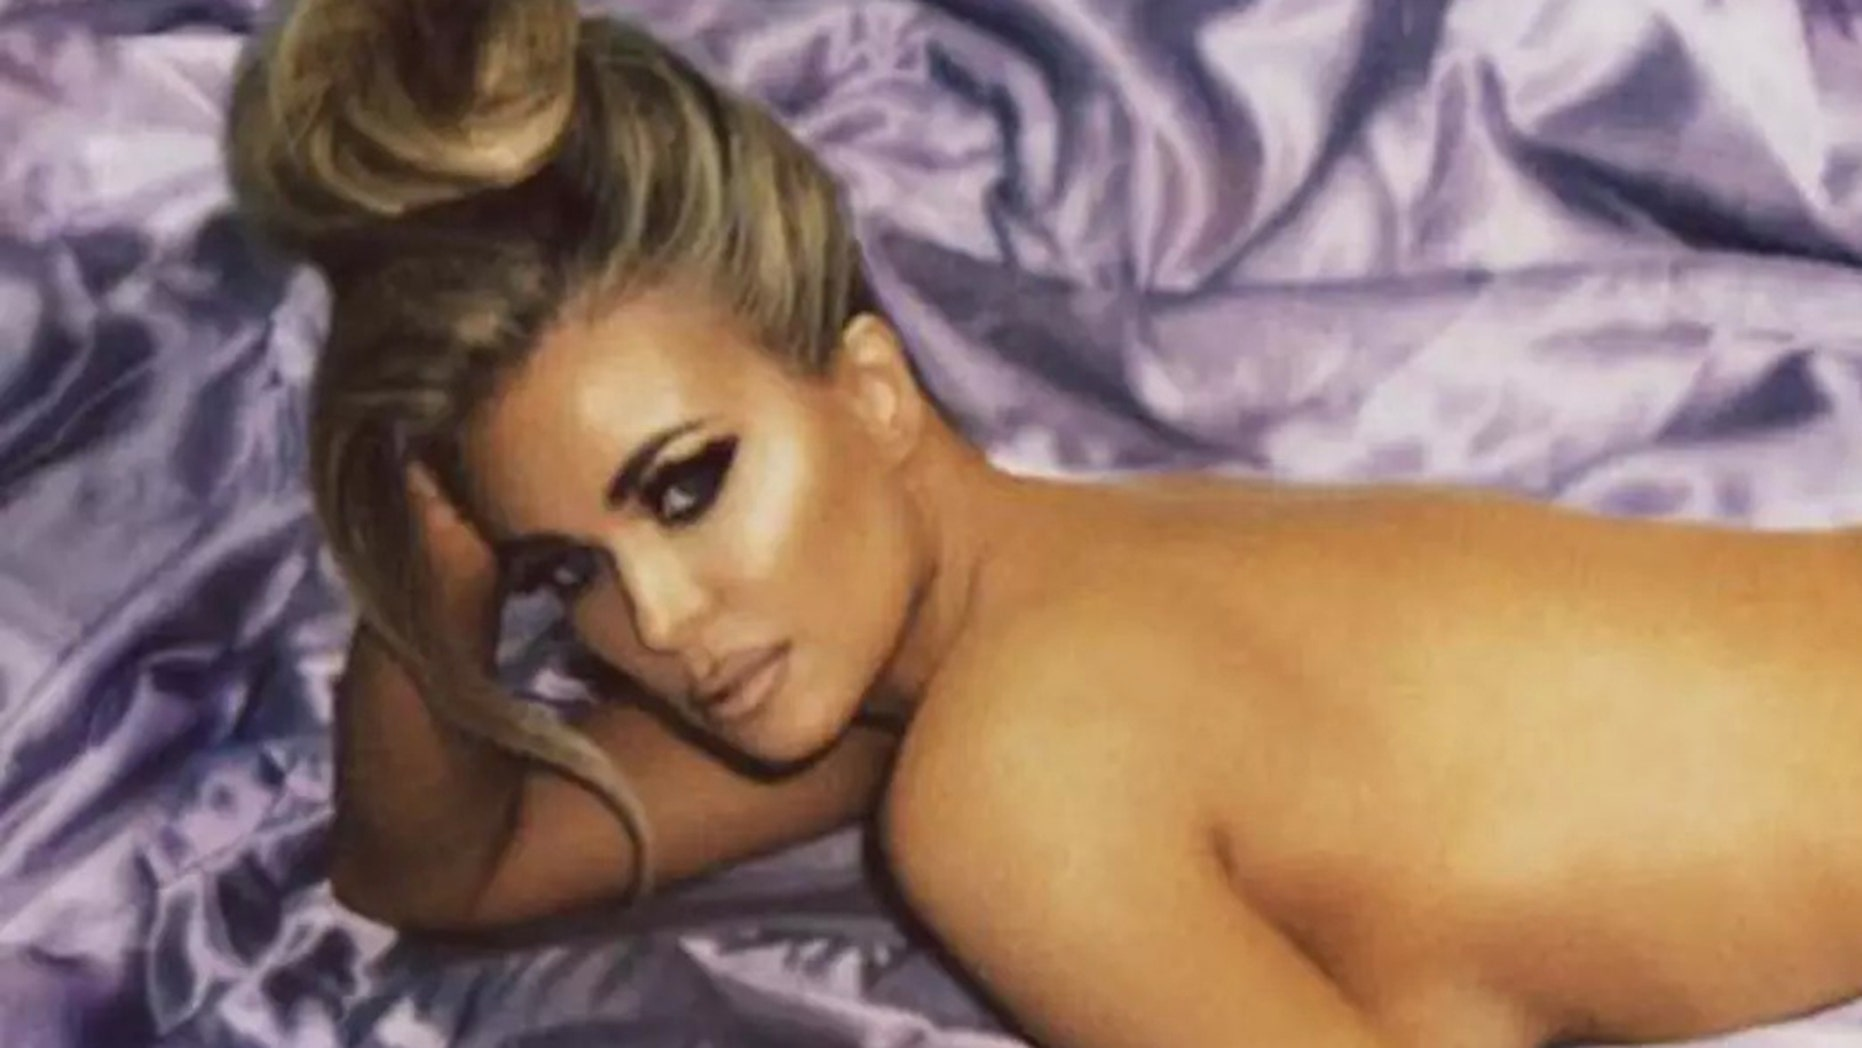 Carmen Electra poses nude for shoot with photographer Eli Russell Linnetz.